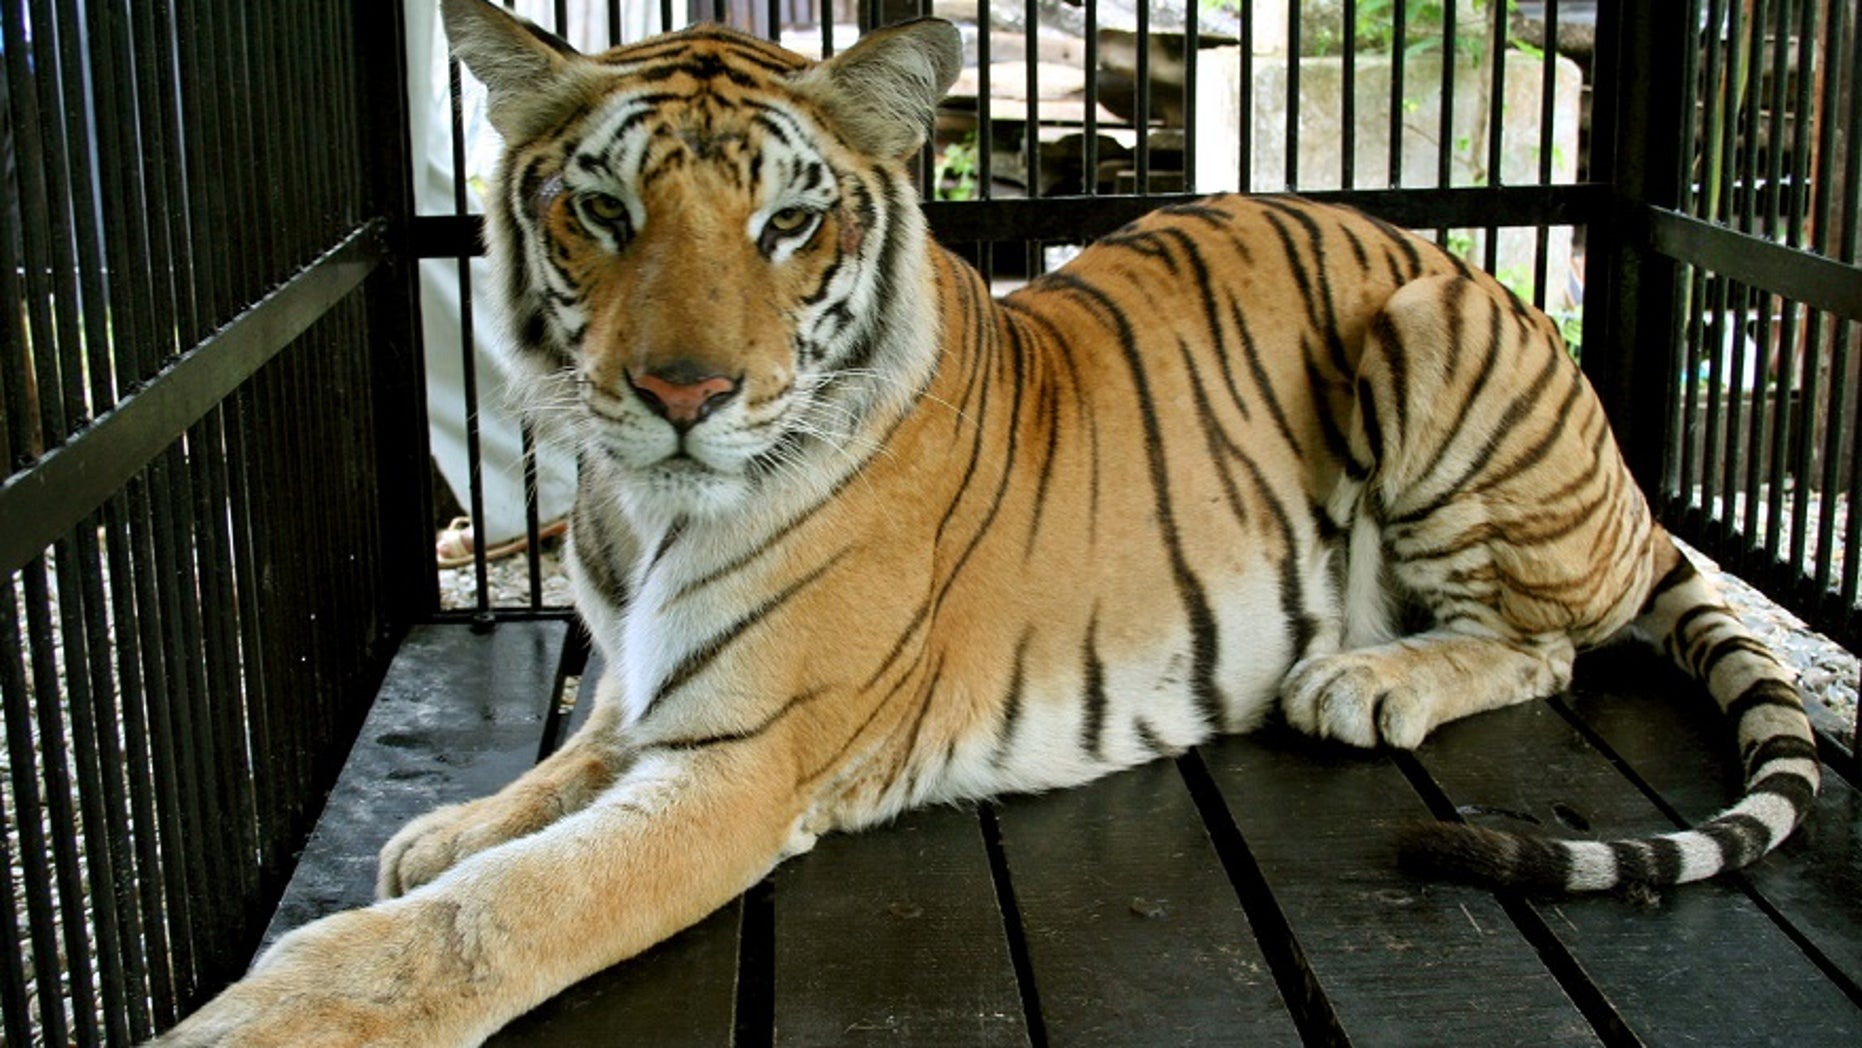 None of the tigers were injured in the crash.